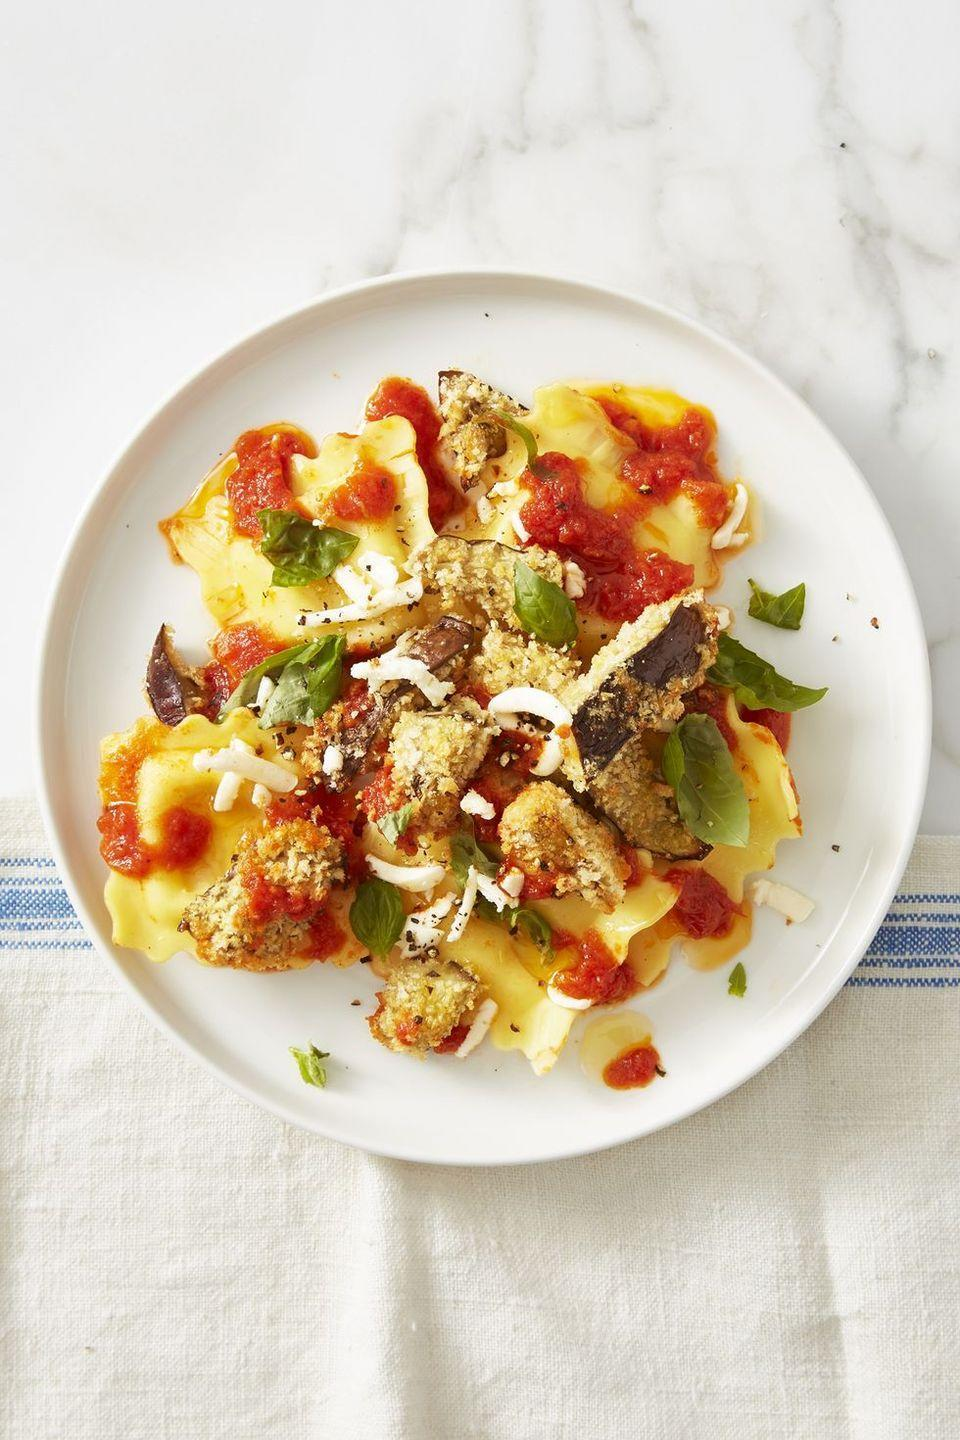 """<p>Air fry breaded eggplant slices to top off store-bought ravioli. Easy!</p><p><em><a href=""""https://www.goodhousekeeping.com/food-recipes/easy/a45682/speedy-eggplant-parmesan-recipe/"""" rel=""""nofollow noopener"""" target=""""_blank"""" data-ylk=""""slk:Get the recipe for Speedy Eggplant Parmesan »"""" class=""""link rapid-noclick-resp"""">Get the recipe for Speedy Eggplant Parmesan »</a></em></p>"""